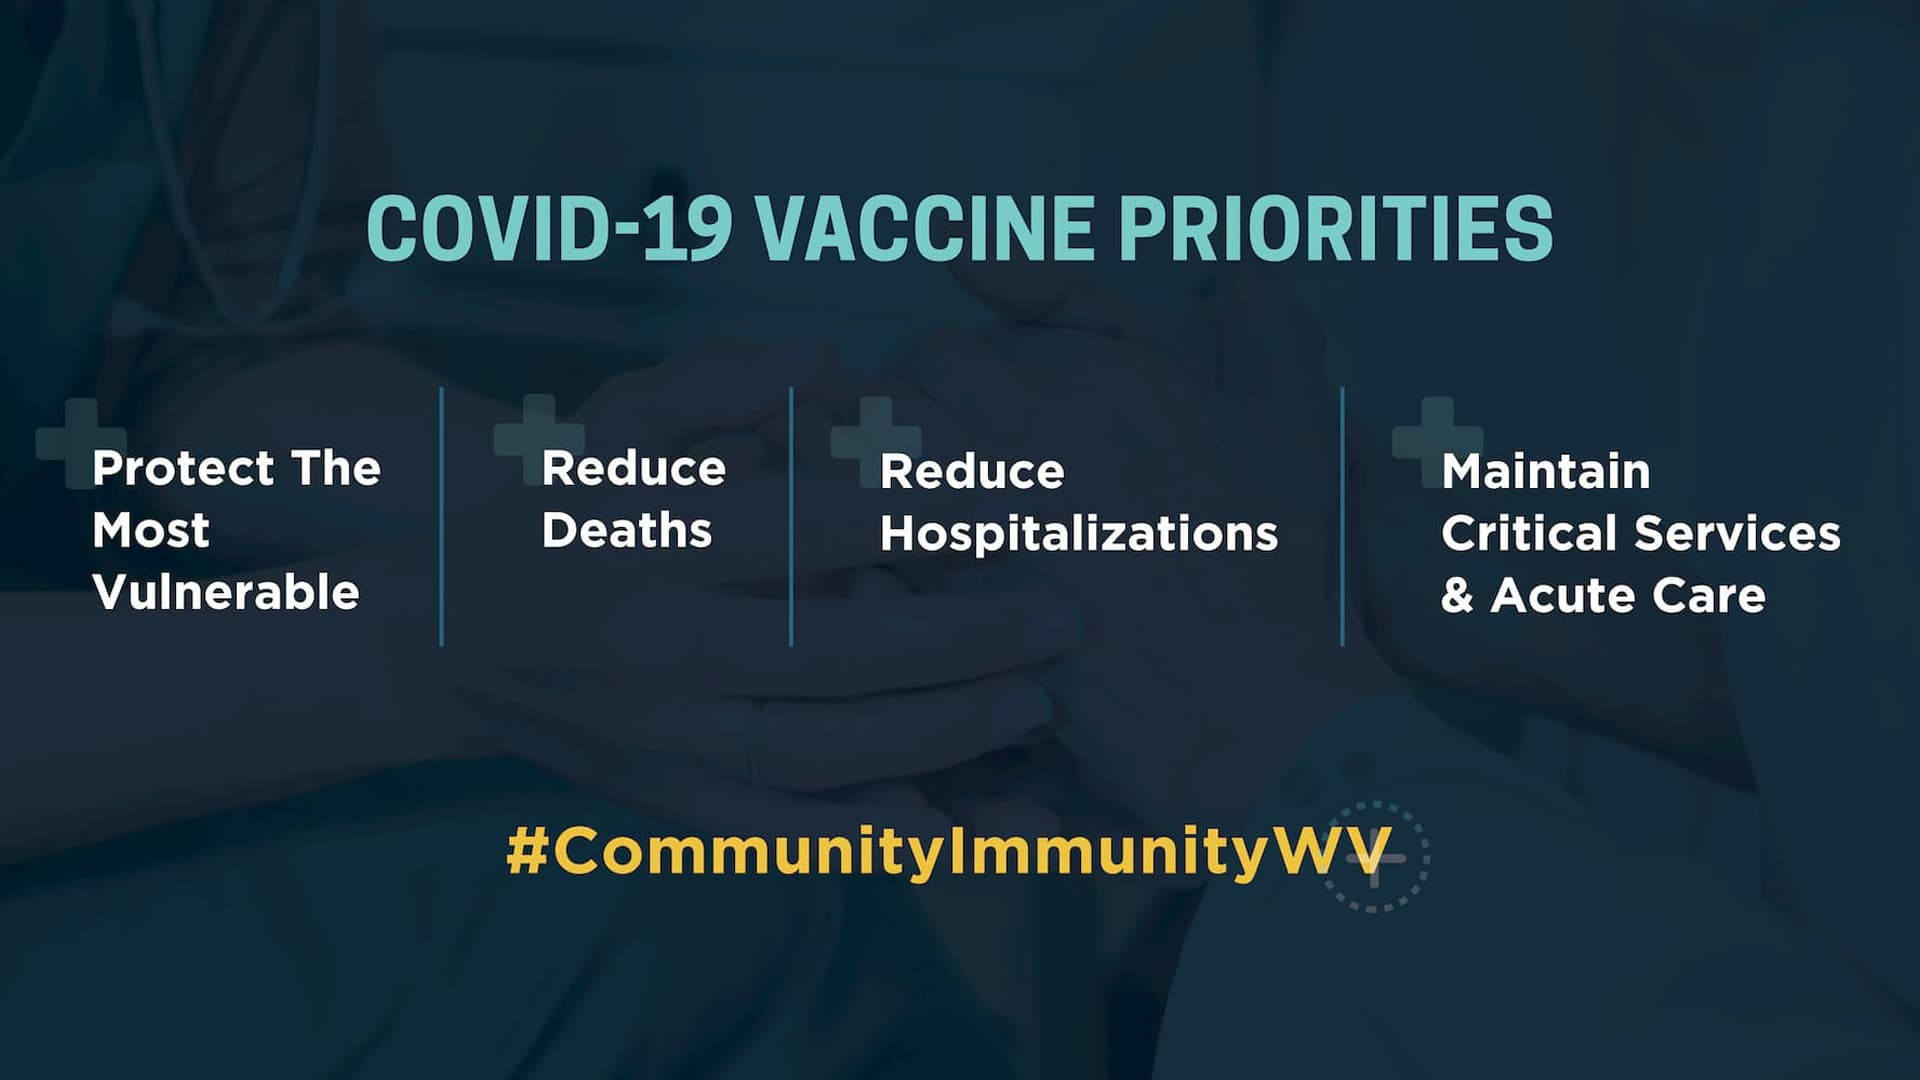 COVID-19 Vaccine Priorities: 1. Reduce the number of deaths. 2. Reduce hospital admittance. 3. Protect the most vulnerable. 4. Maintain hospital capacity.